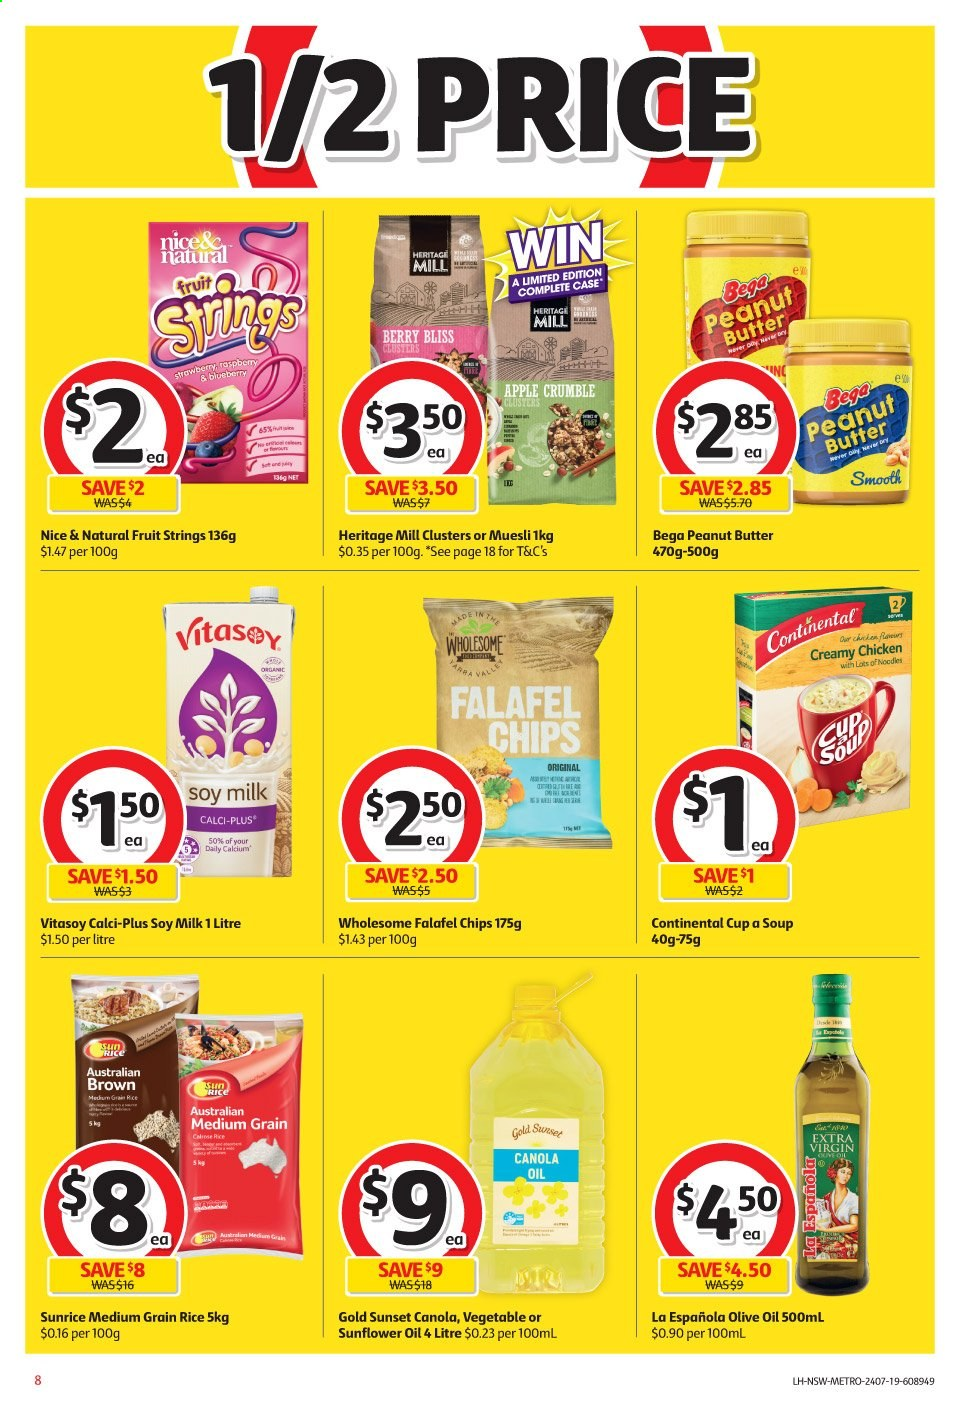 Coles catalogue and weekly specials 24 7 2019 - 30 7 2019